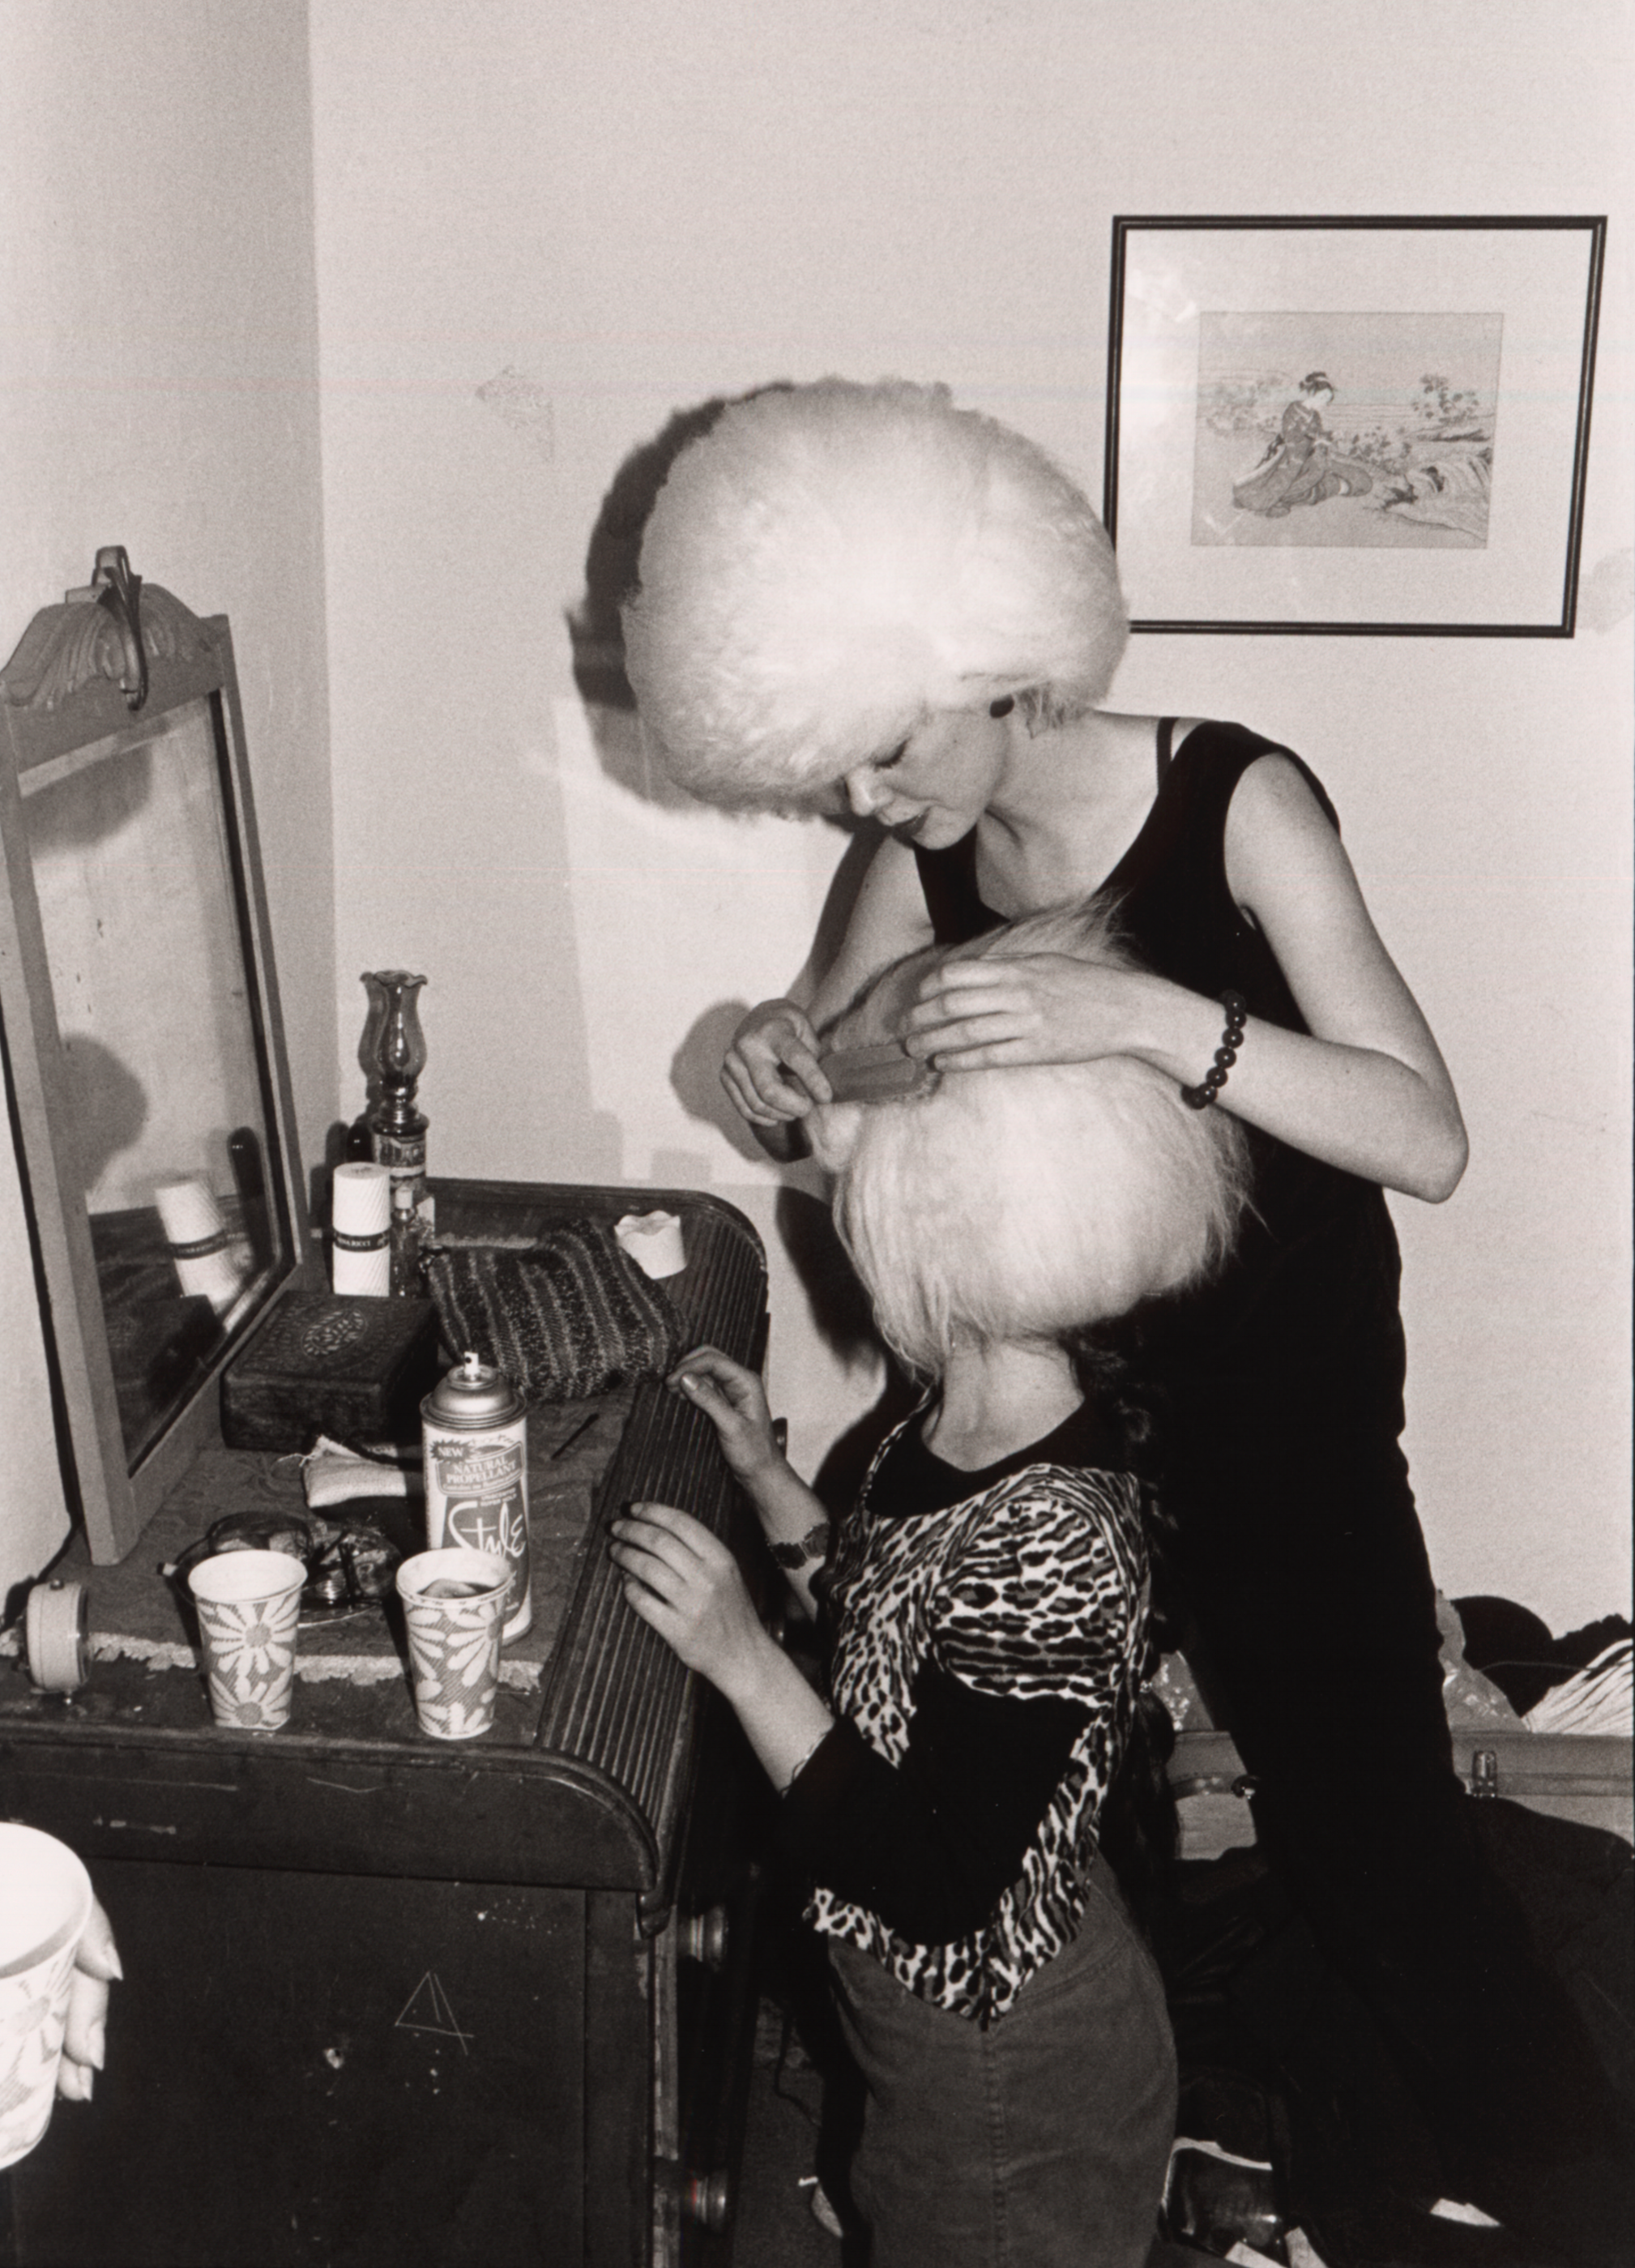 Cindy Wilson + Kate Pierson getting ready for the first show, 1977 by Kelly Bugden